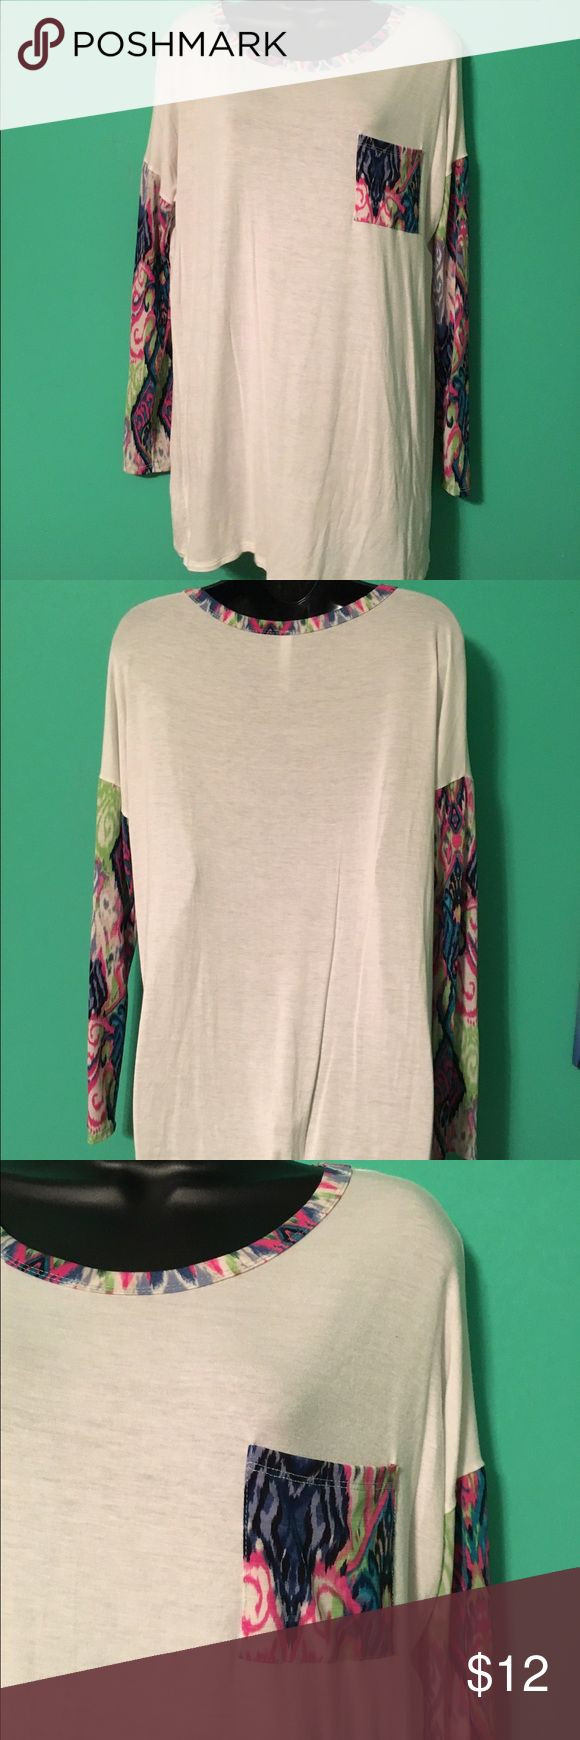 Cream Tee with Bright Printed Sleeves and Pocket Cute, stretchy, cotton-feeing top with bright accent sleeves. 96% rayon, 4% spandex. Tops Tees - Long Sleeve